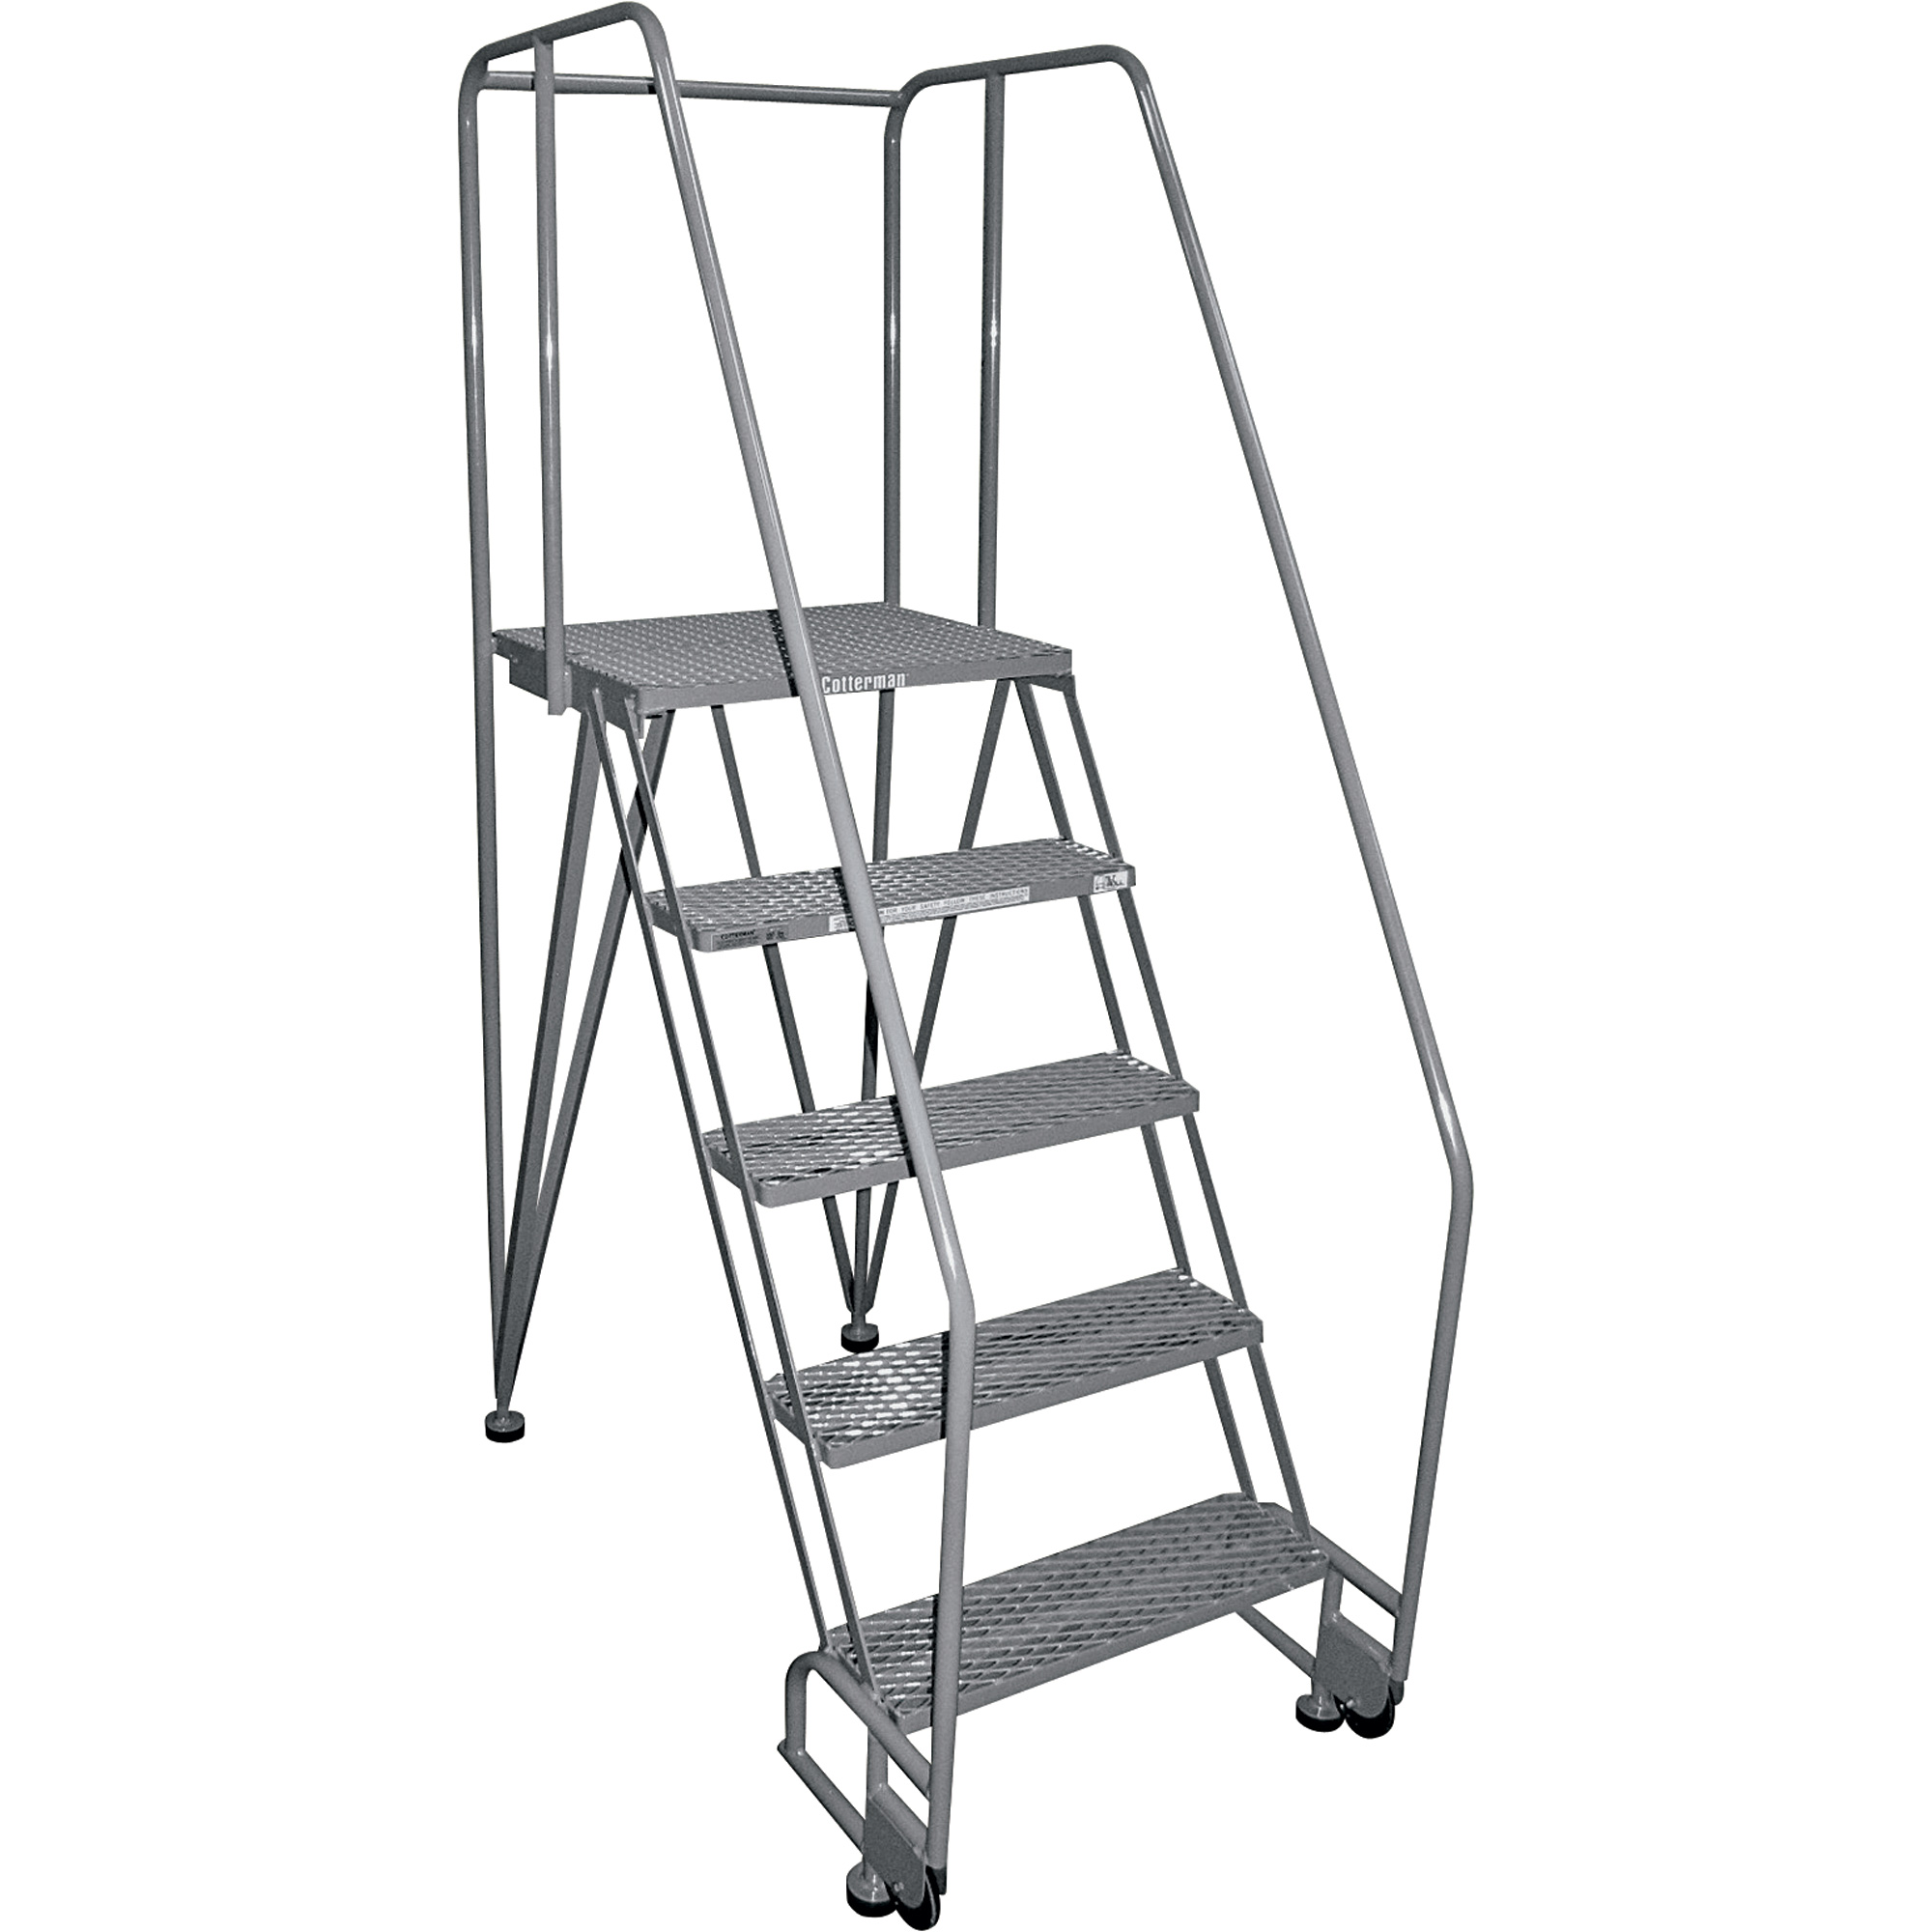 Step Ladder Ladders Bmm Gif Clipart   Free Clip Art Images